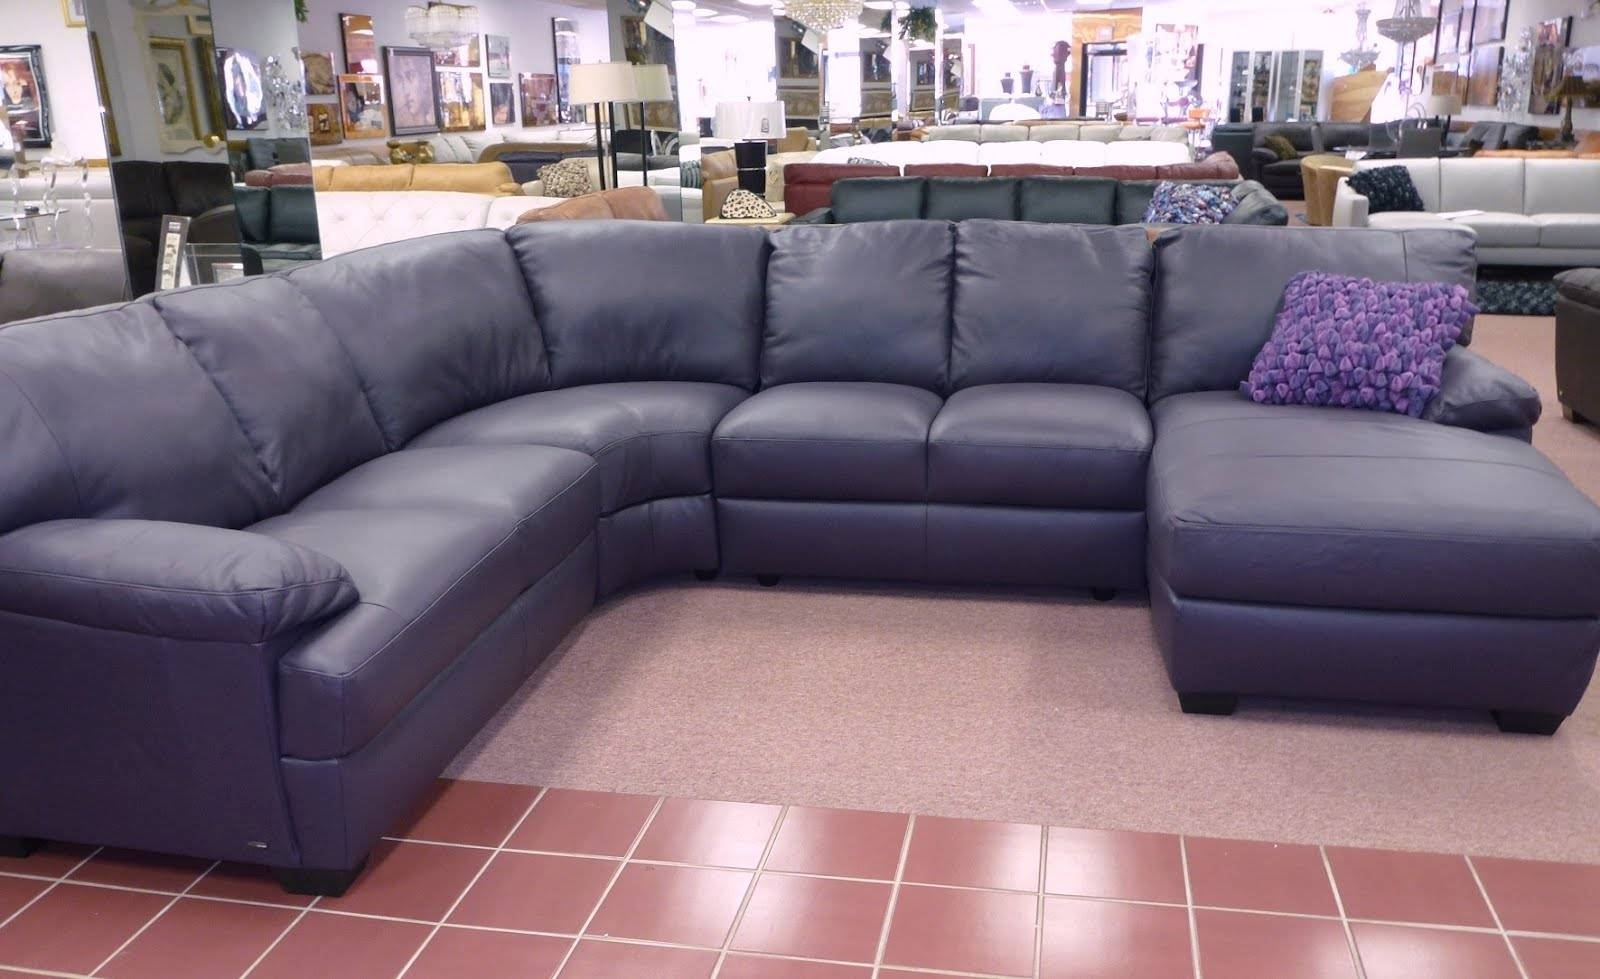 Sofas Center : Leather Sofas On Sale For Home Custom Sofa Design intended for Leather Sofa Sectionals For Sale (Image 22 of 30)